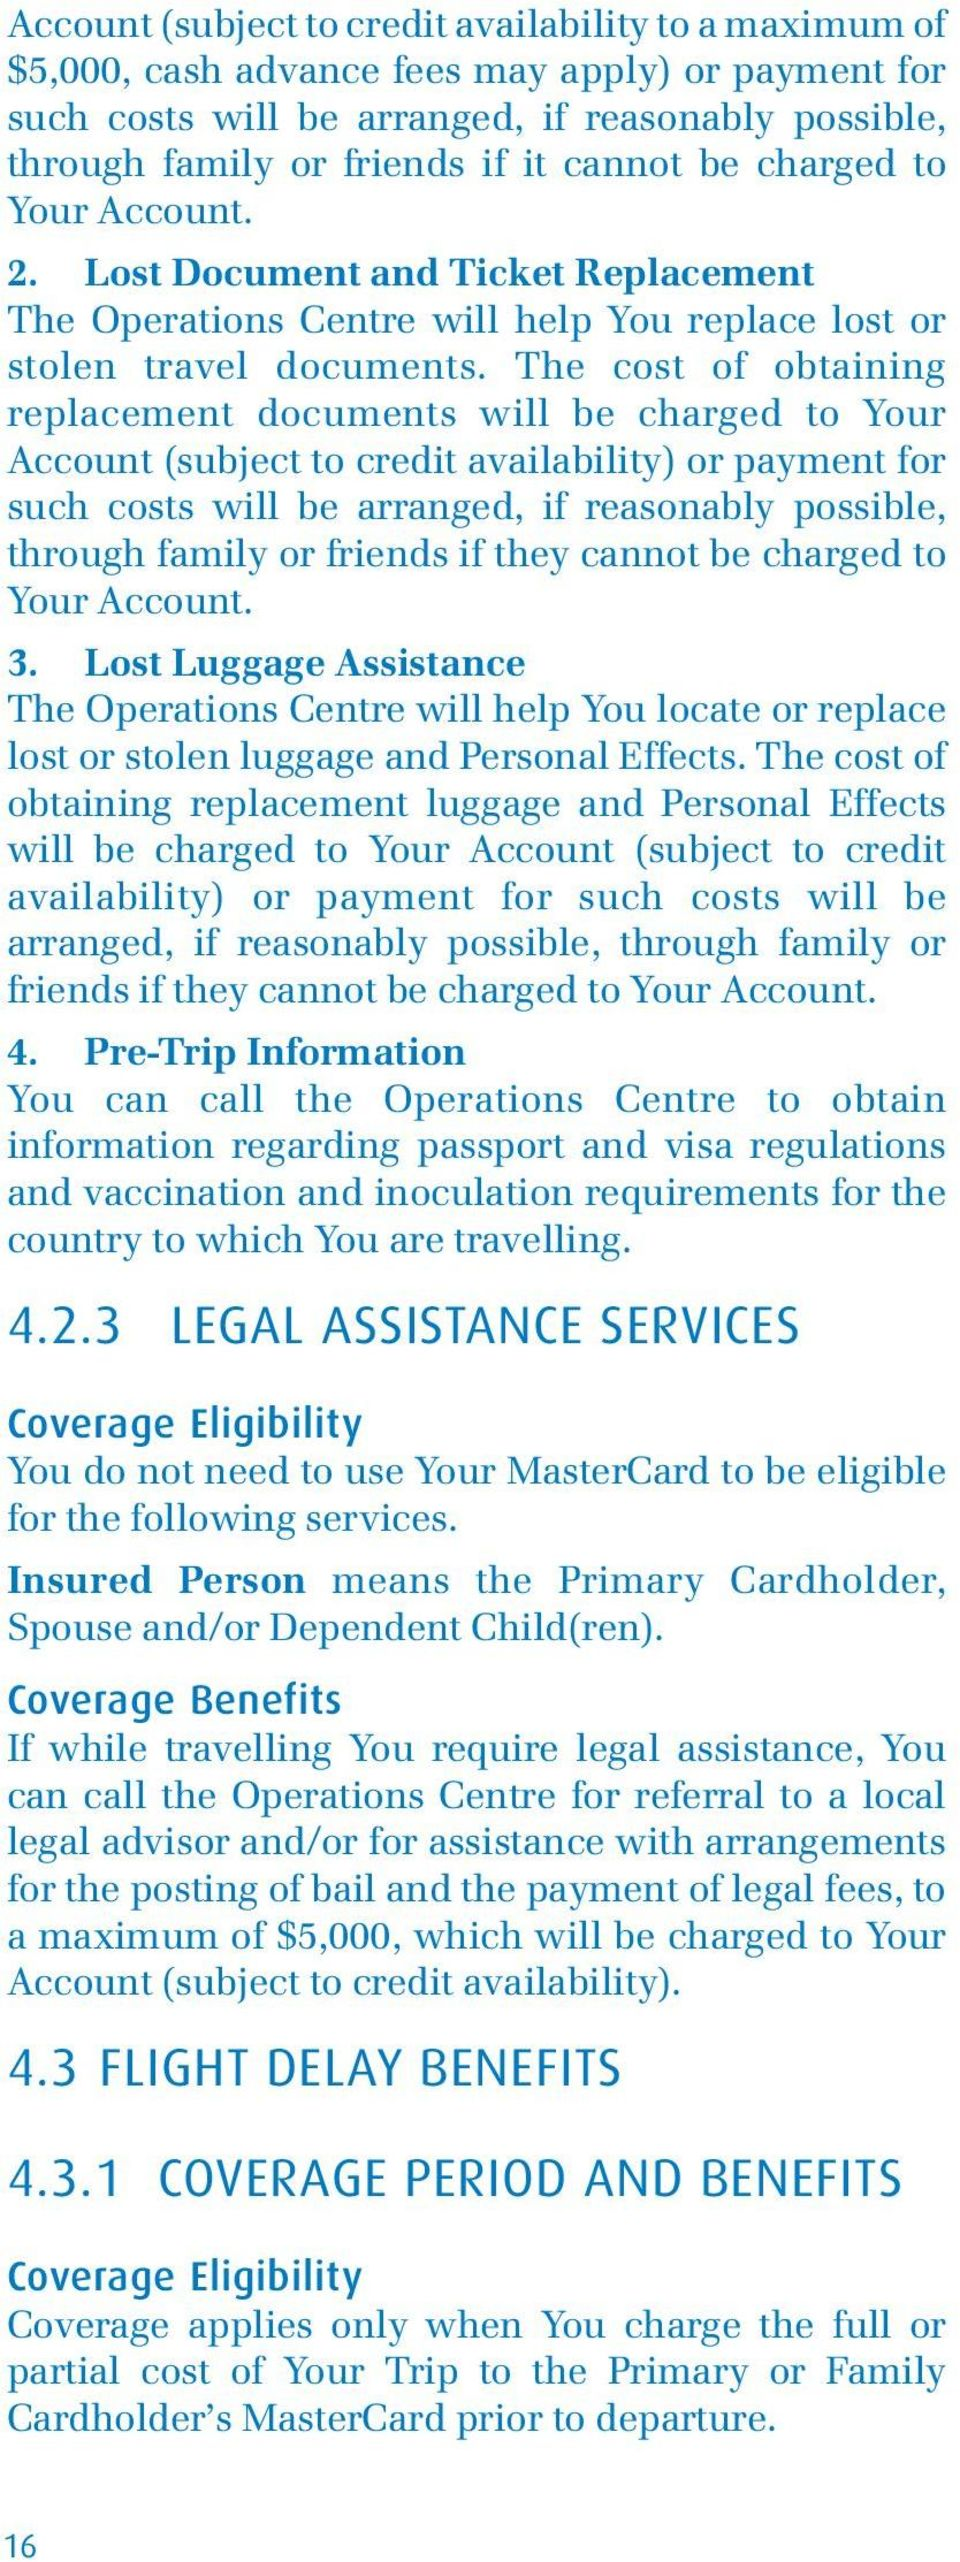 The cost of obtaining replacement documents will be charged to Your Account (subject to credit availability) or payment for such costs will be arranged, if reasonably possible, through family or